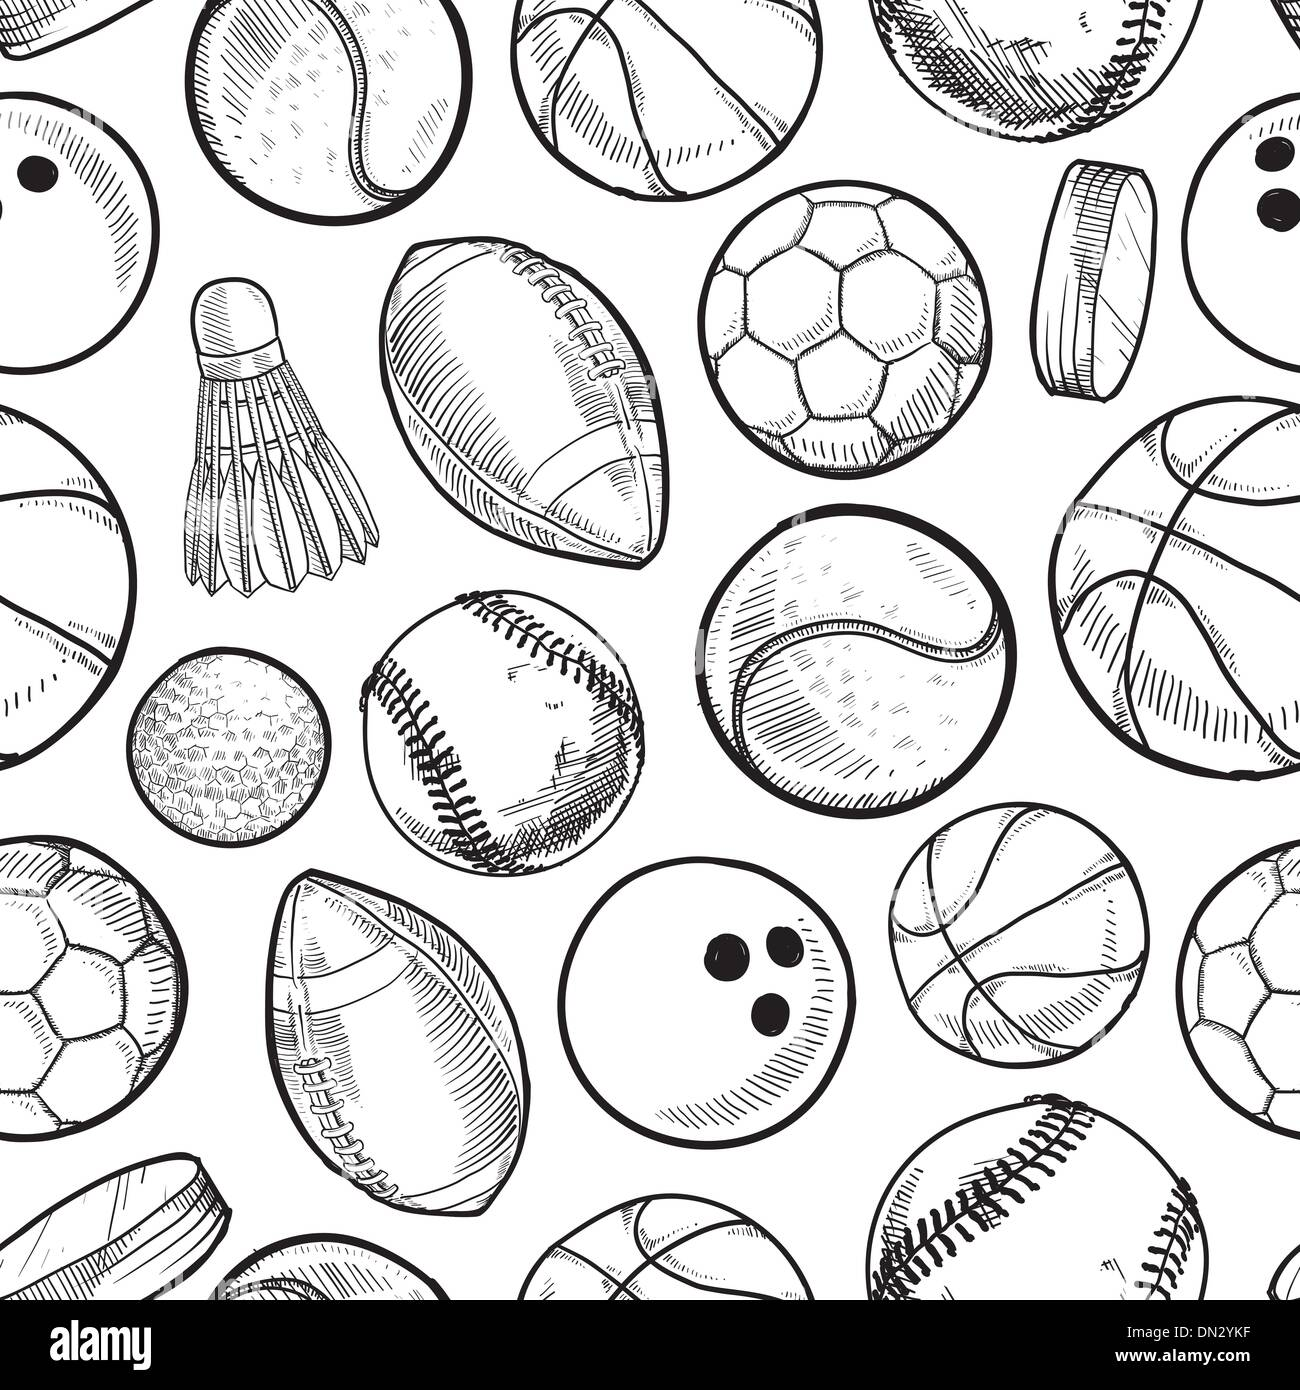 Seamless sports equipment background - Stock Image